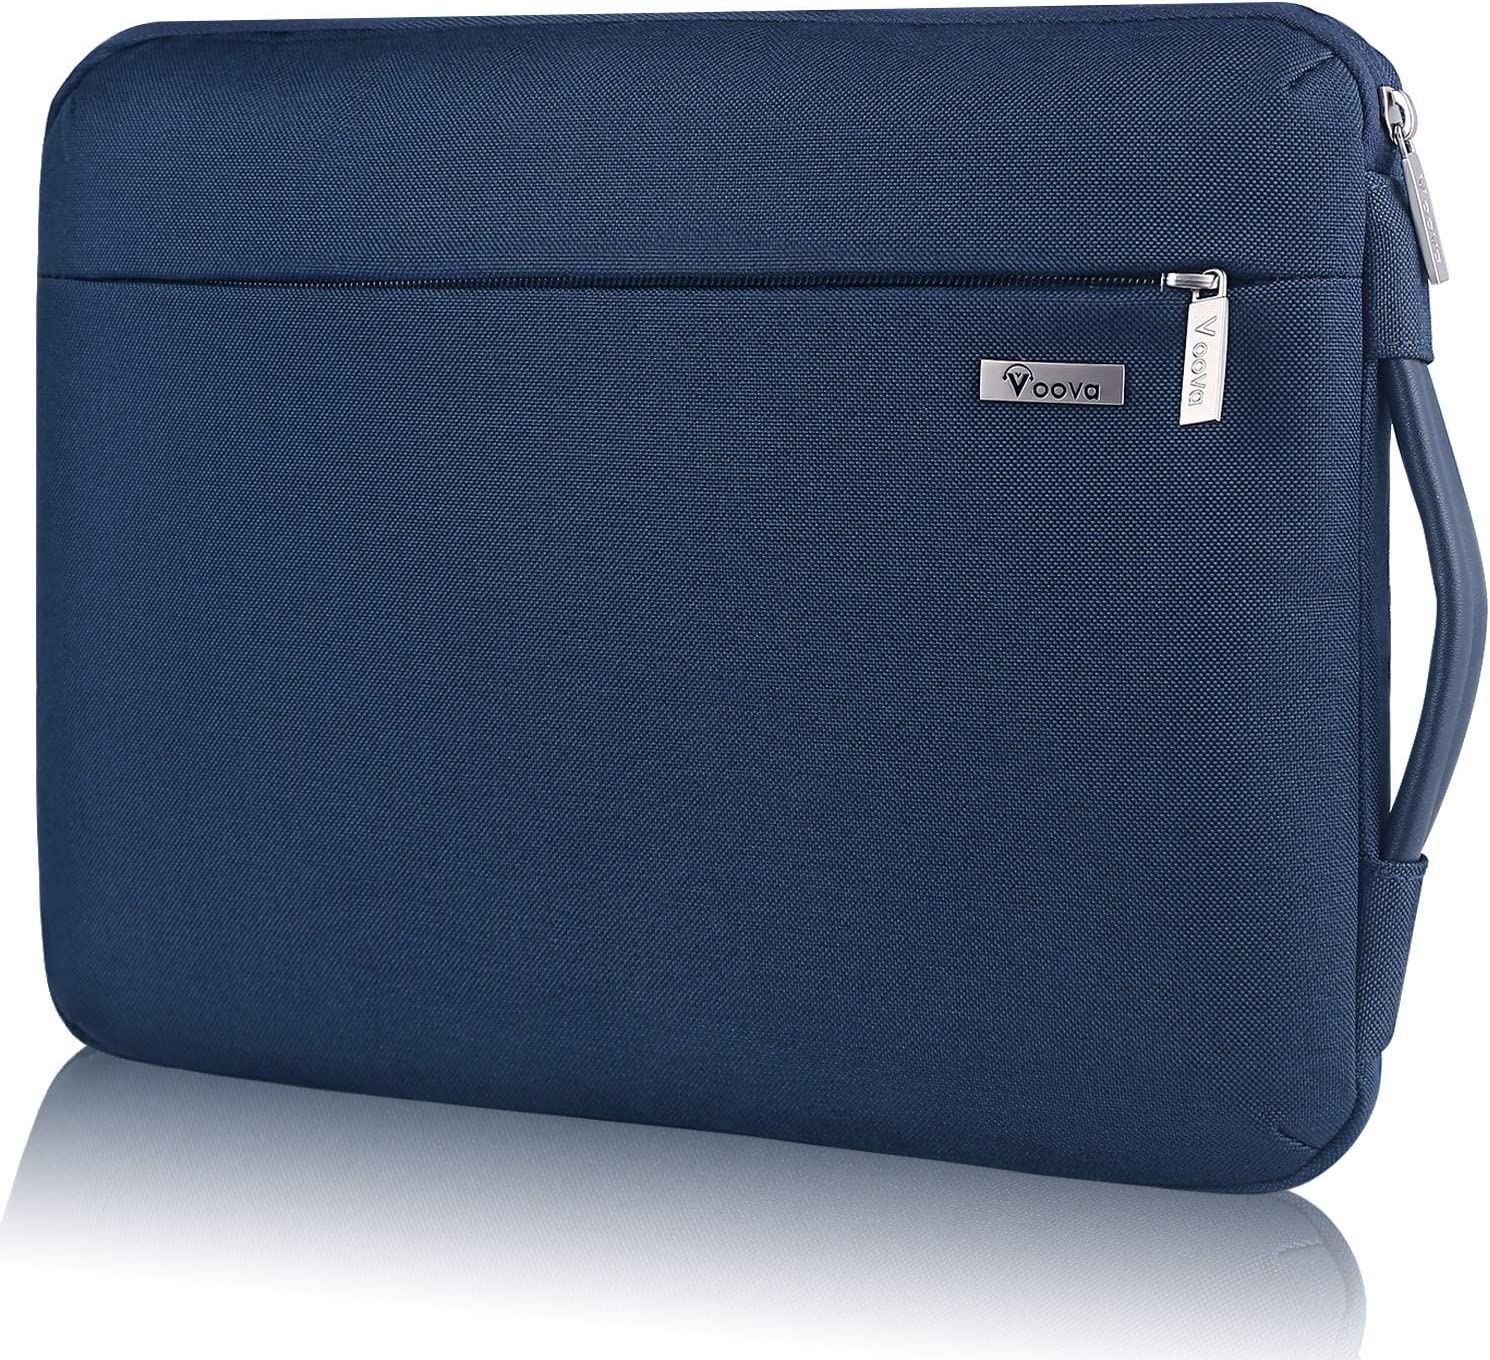 "Voova Laptop Sleeve Case 11 11.6 12 inch with Handle, Upgrade 360° Protective Computer Bag Compatible with Chormebook/MacBook Air/Surface pro 7 6, 12.5"" Tablet Cover with Organizer Pocket,Blue"